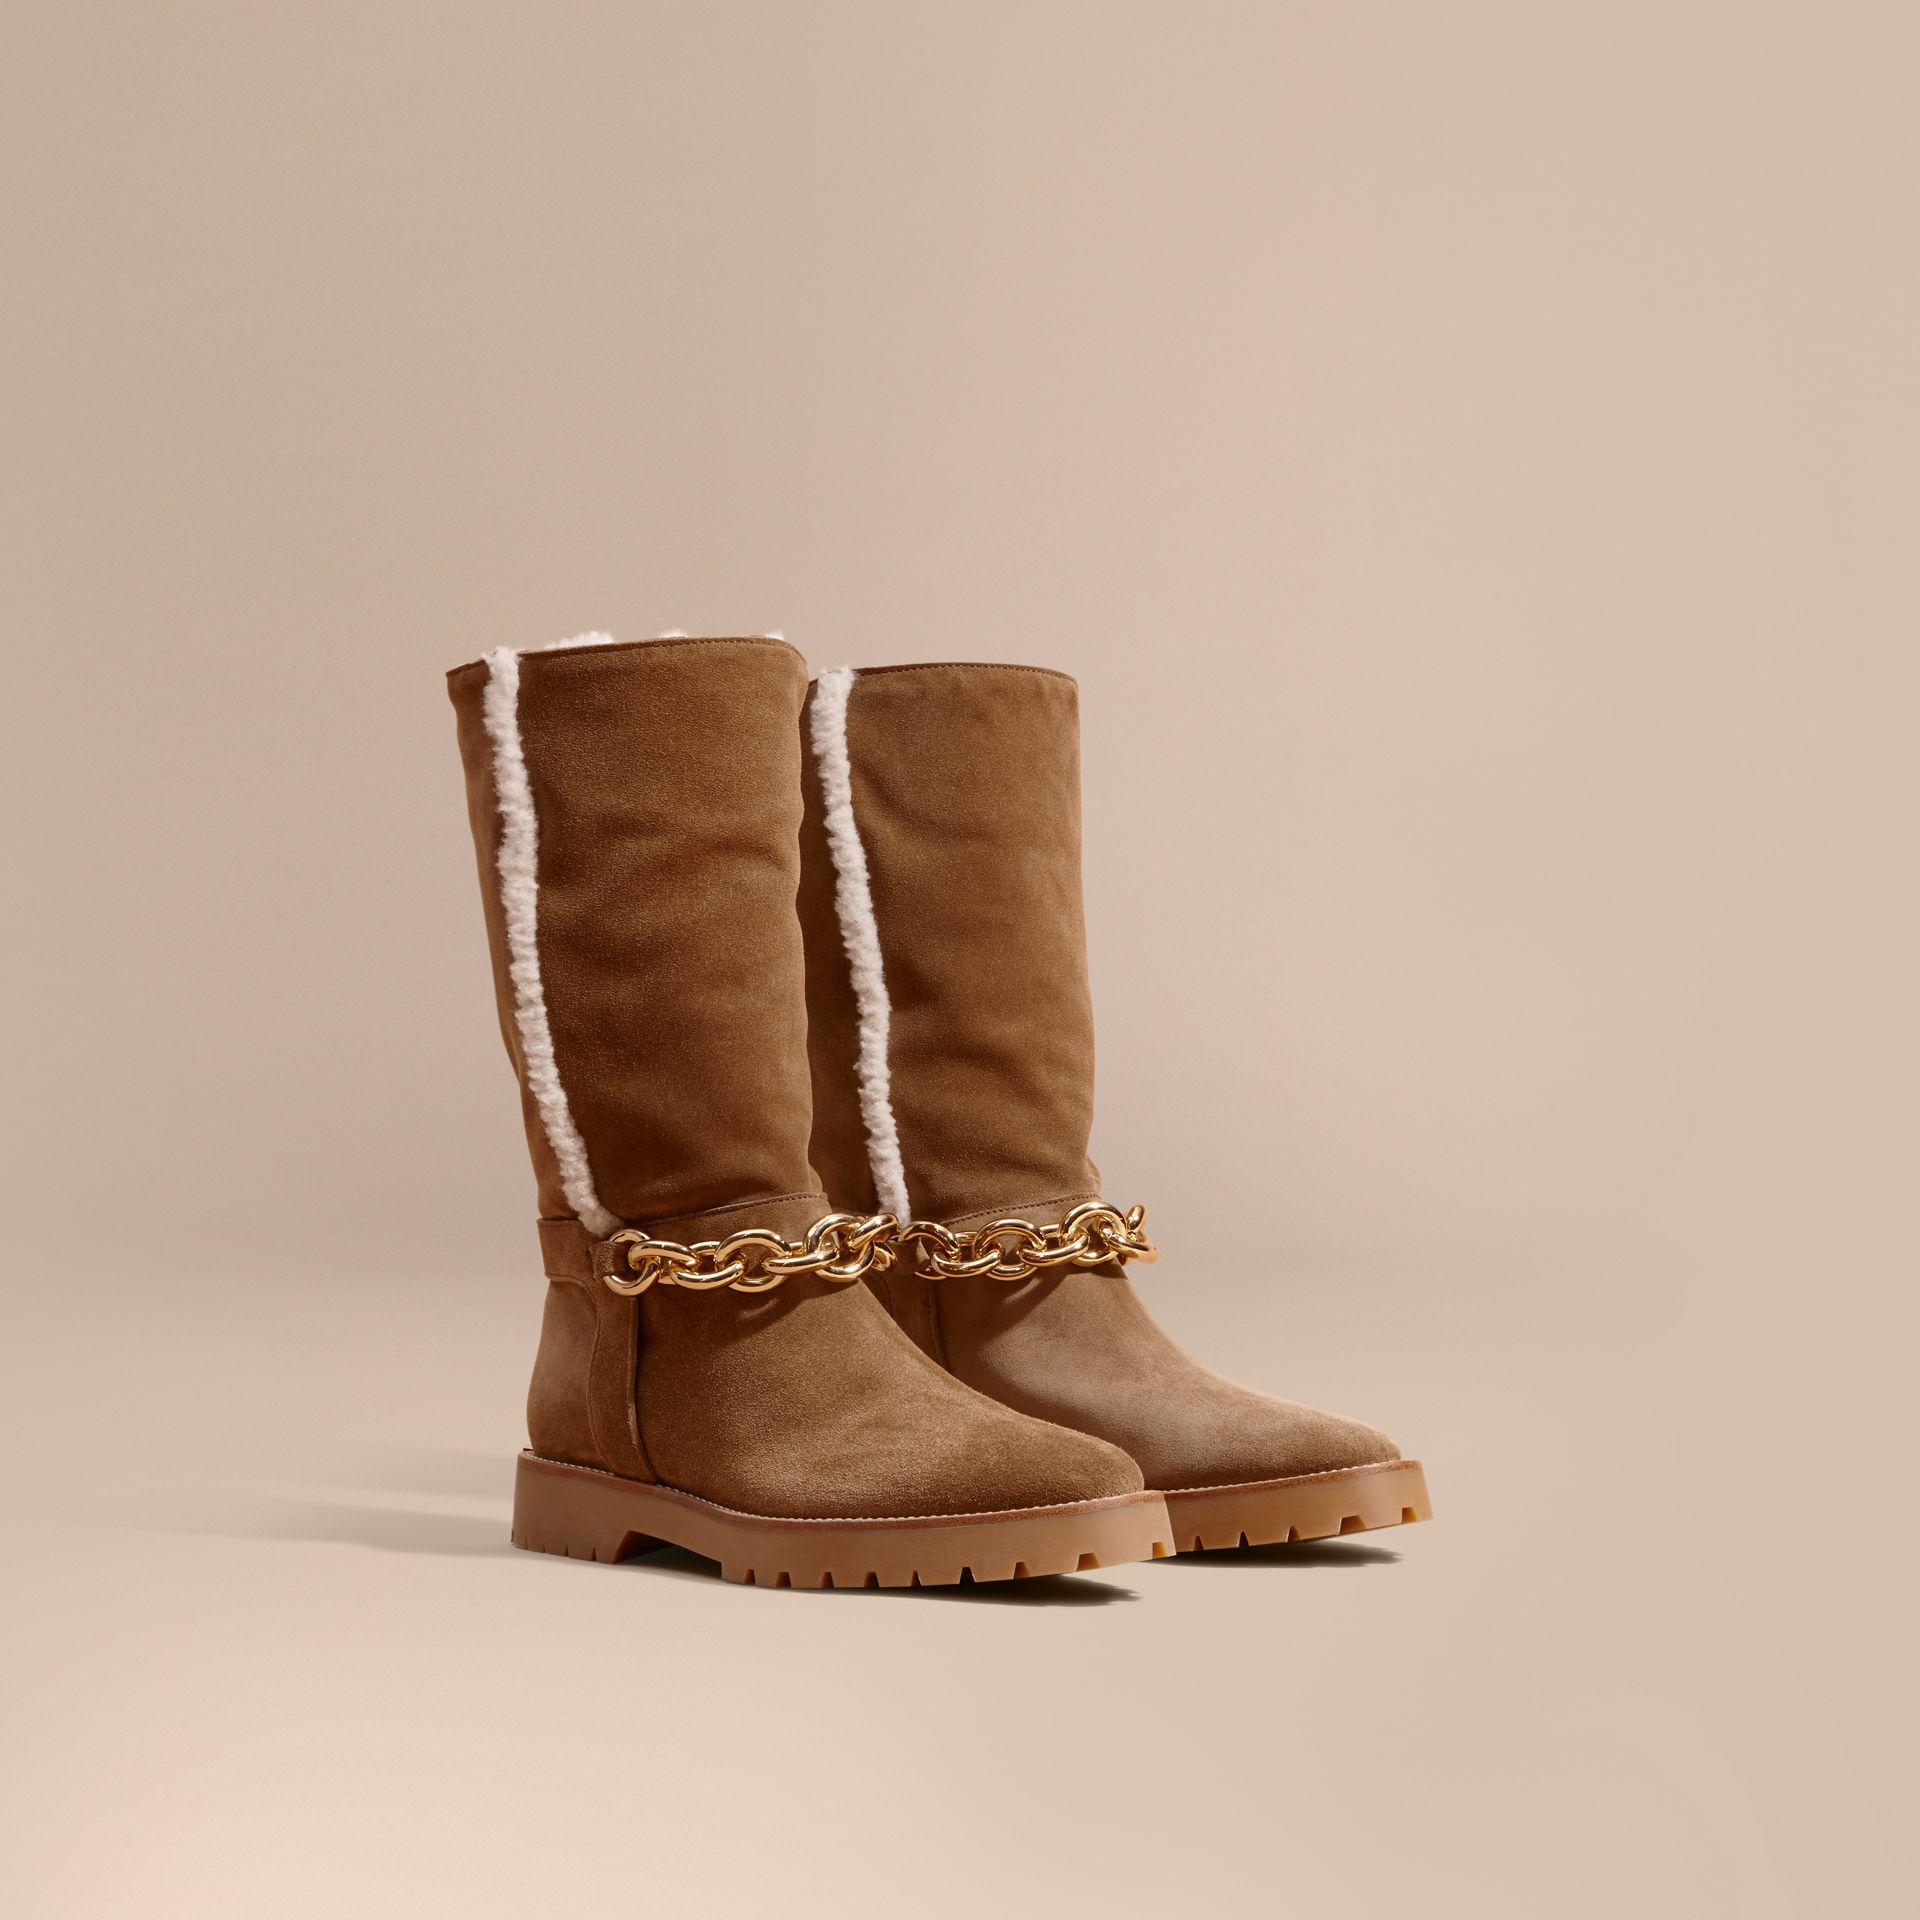 Chain Detail Shearling and Suede Boots - gallery image 1